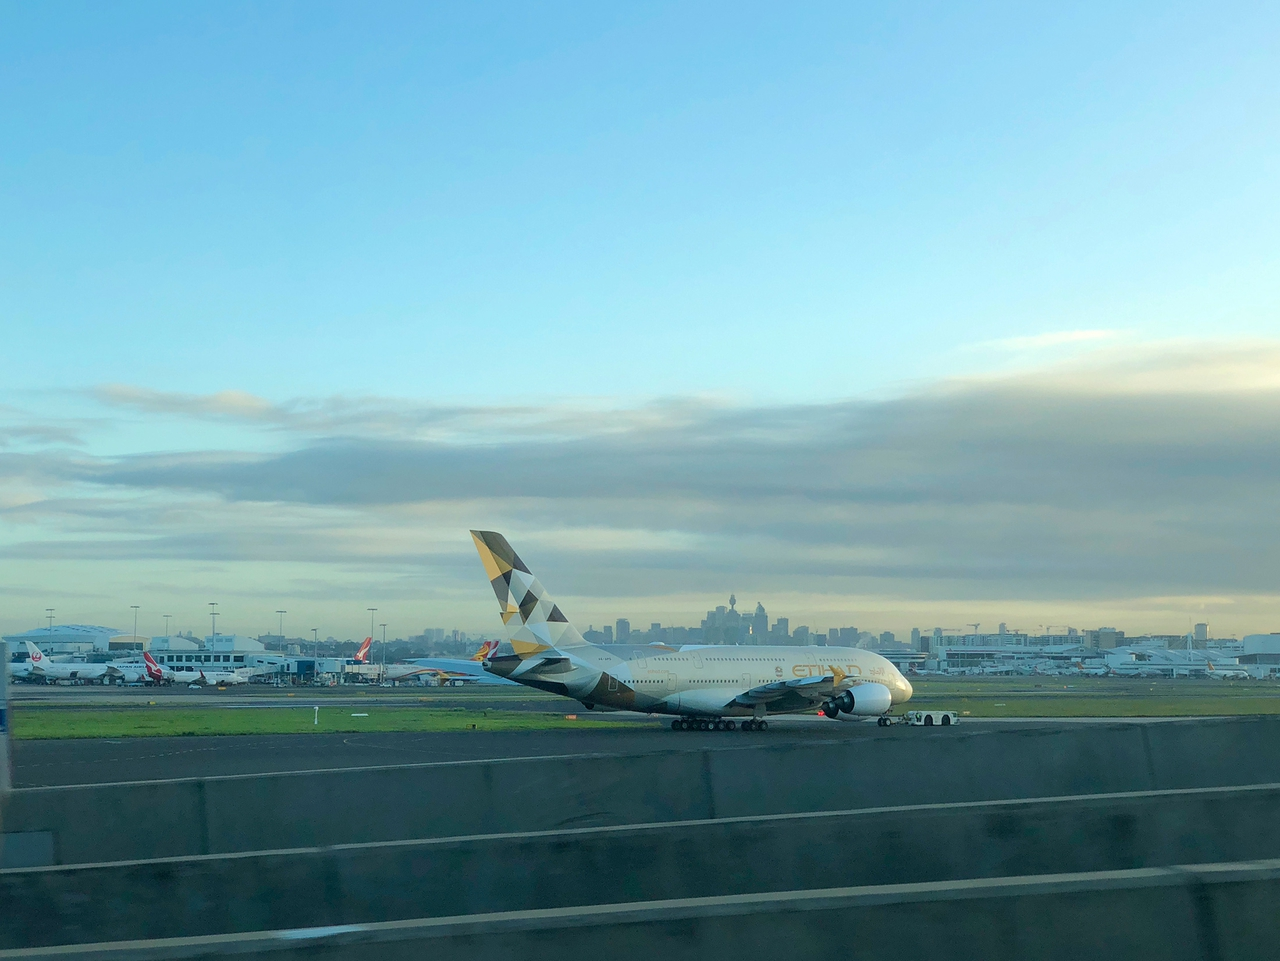 The Etihad A380 taxiing out at Sydney Airport